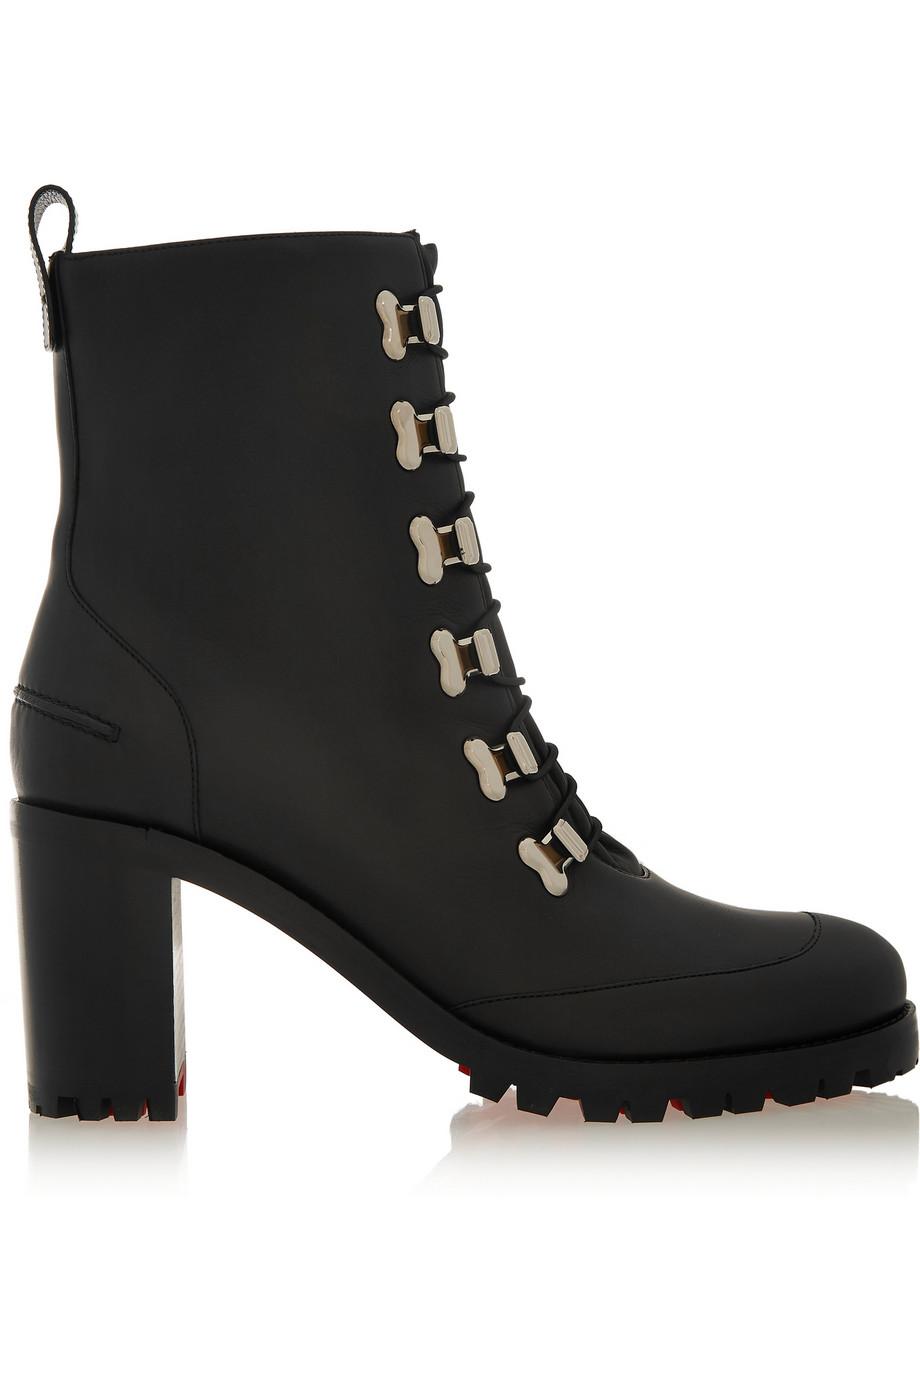 You Know You Want A Pair Of High Heel Combat Boots Now